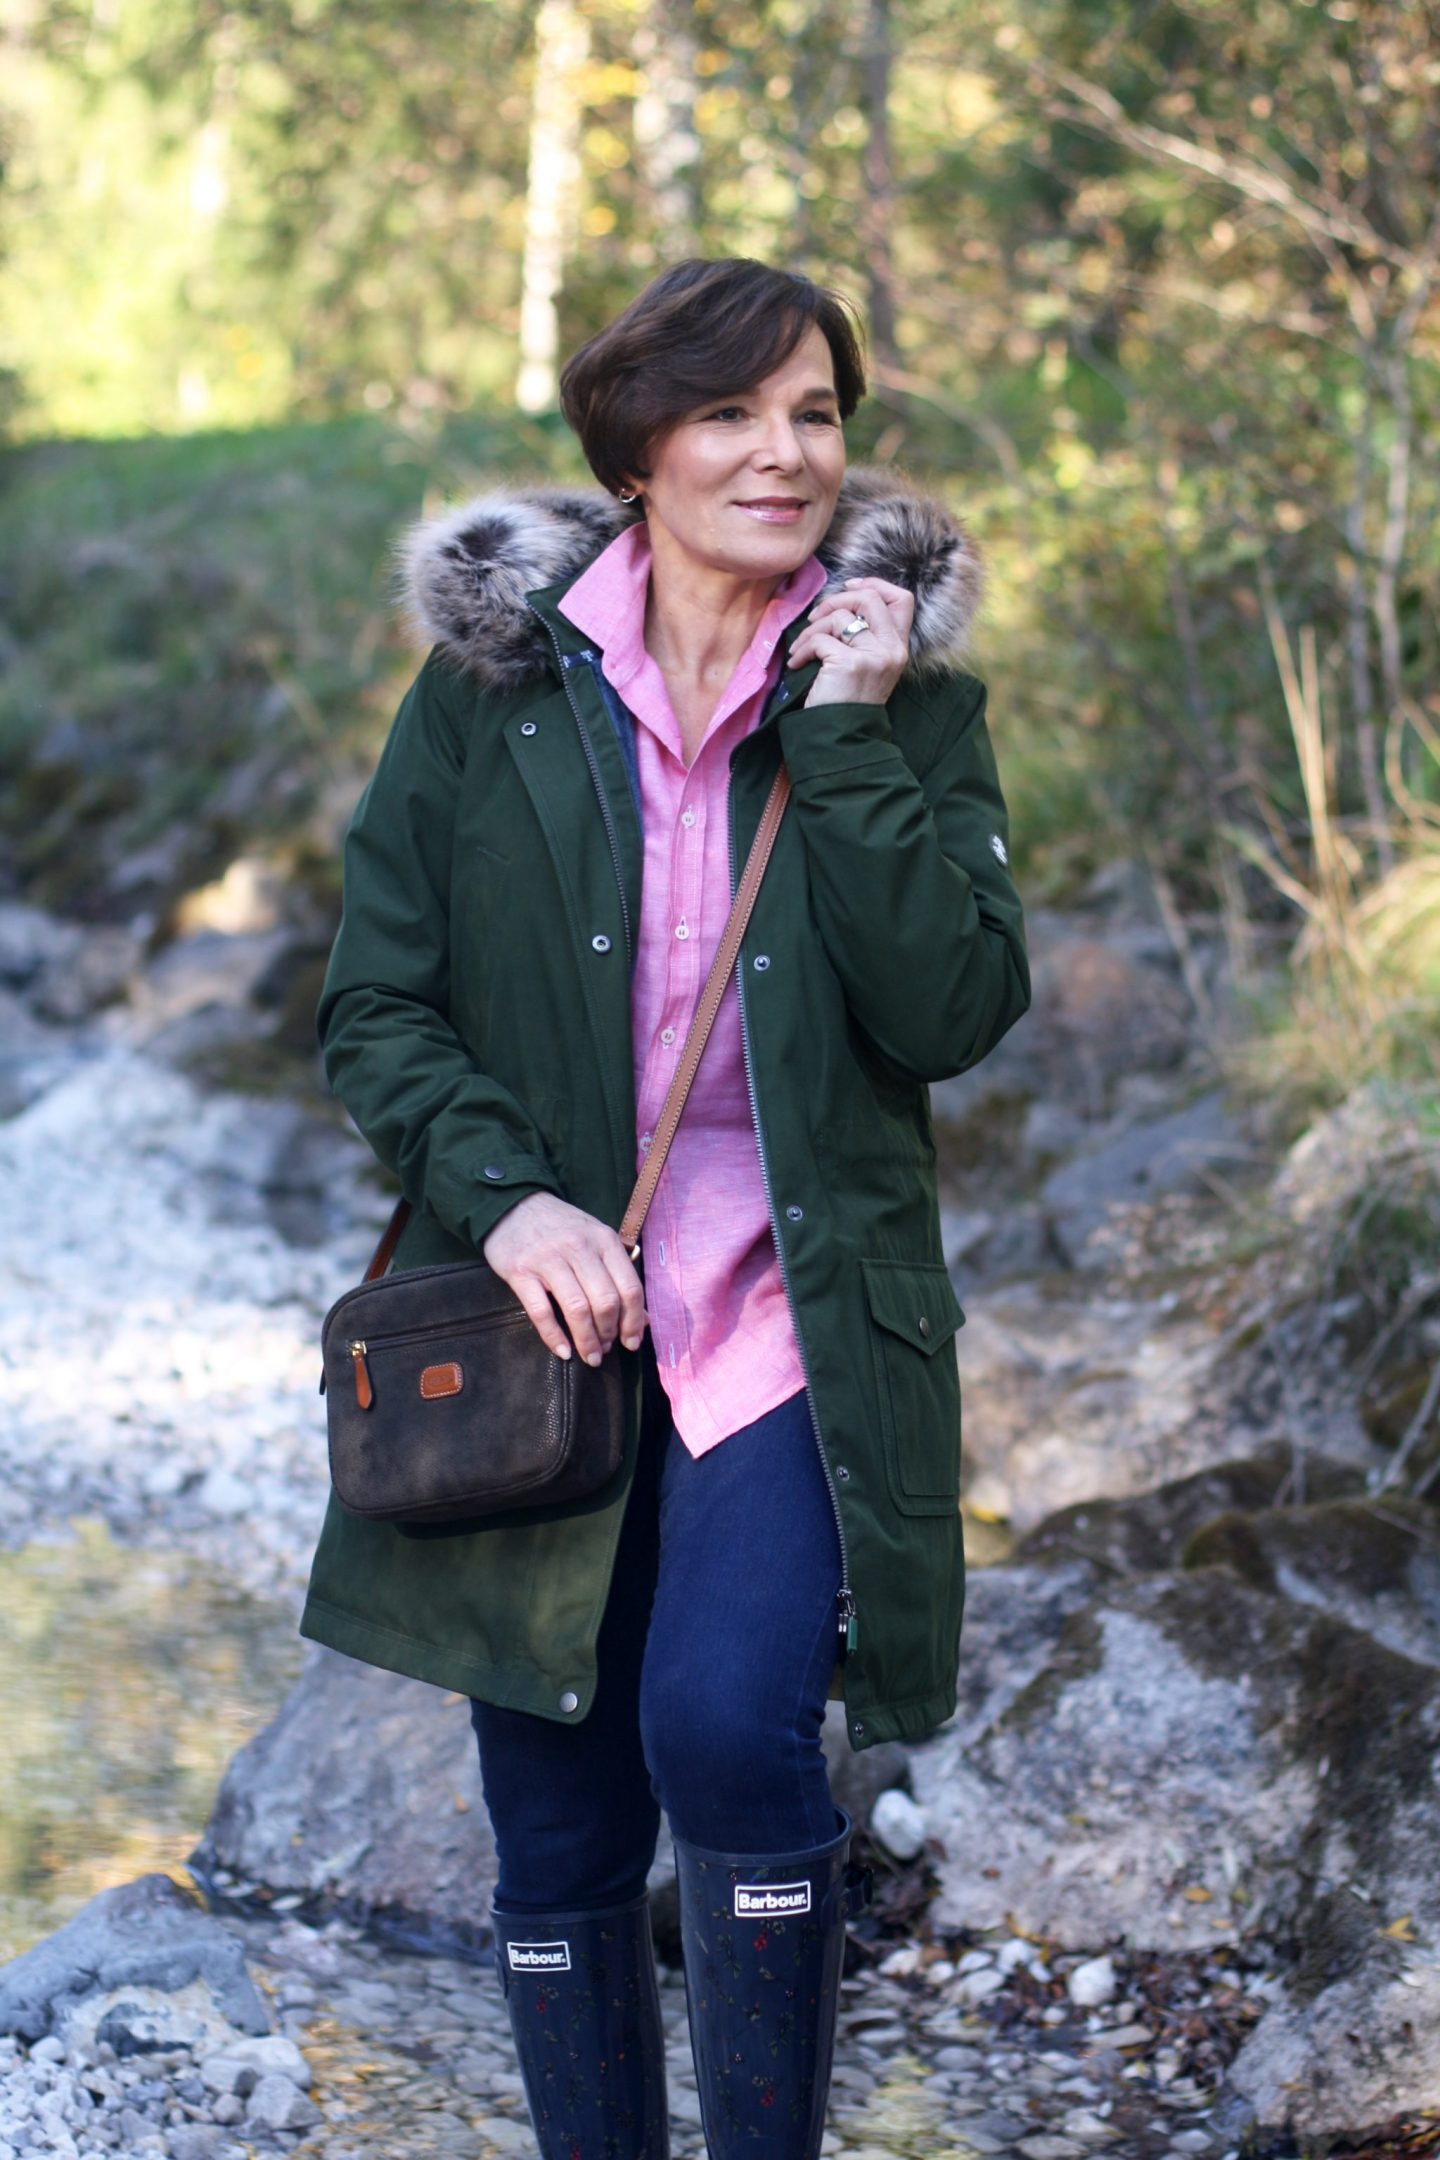 British Shop Barbour Outdoors Parka Gummistiefel Herbstmode 50plus Blogger LadyofStyle